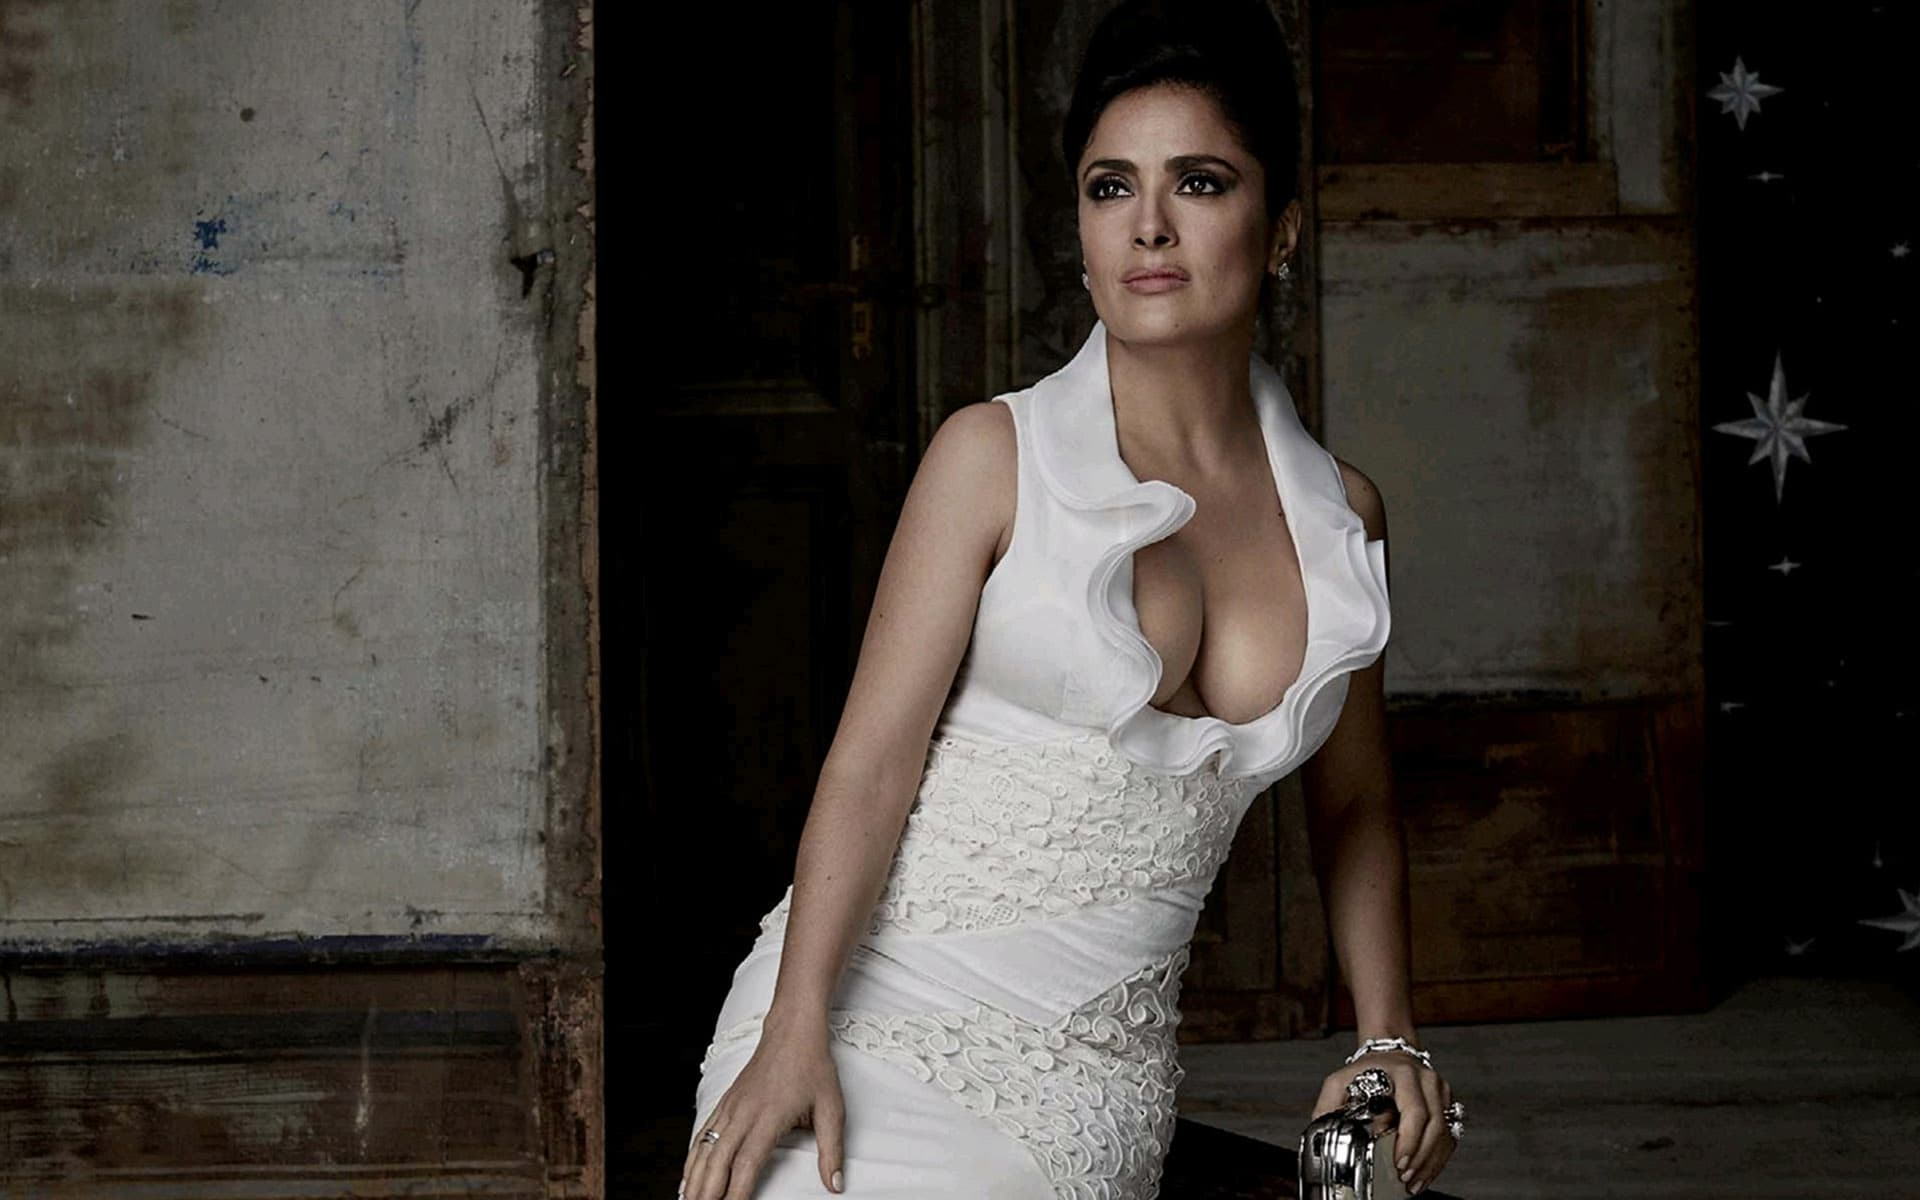 Best Wallpaper For A Car Salma Hayek Wallpapers Hd Pictures Photos Images